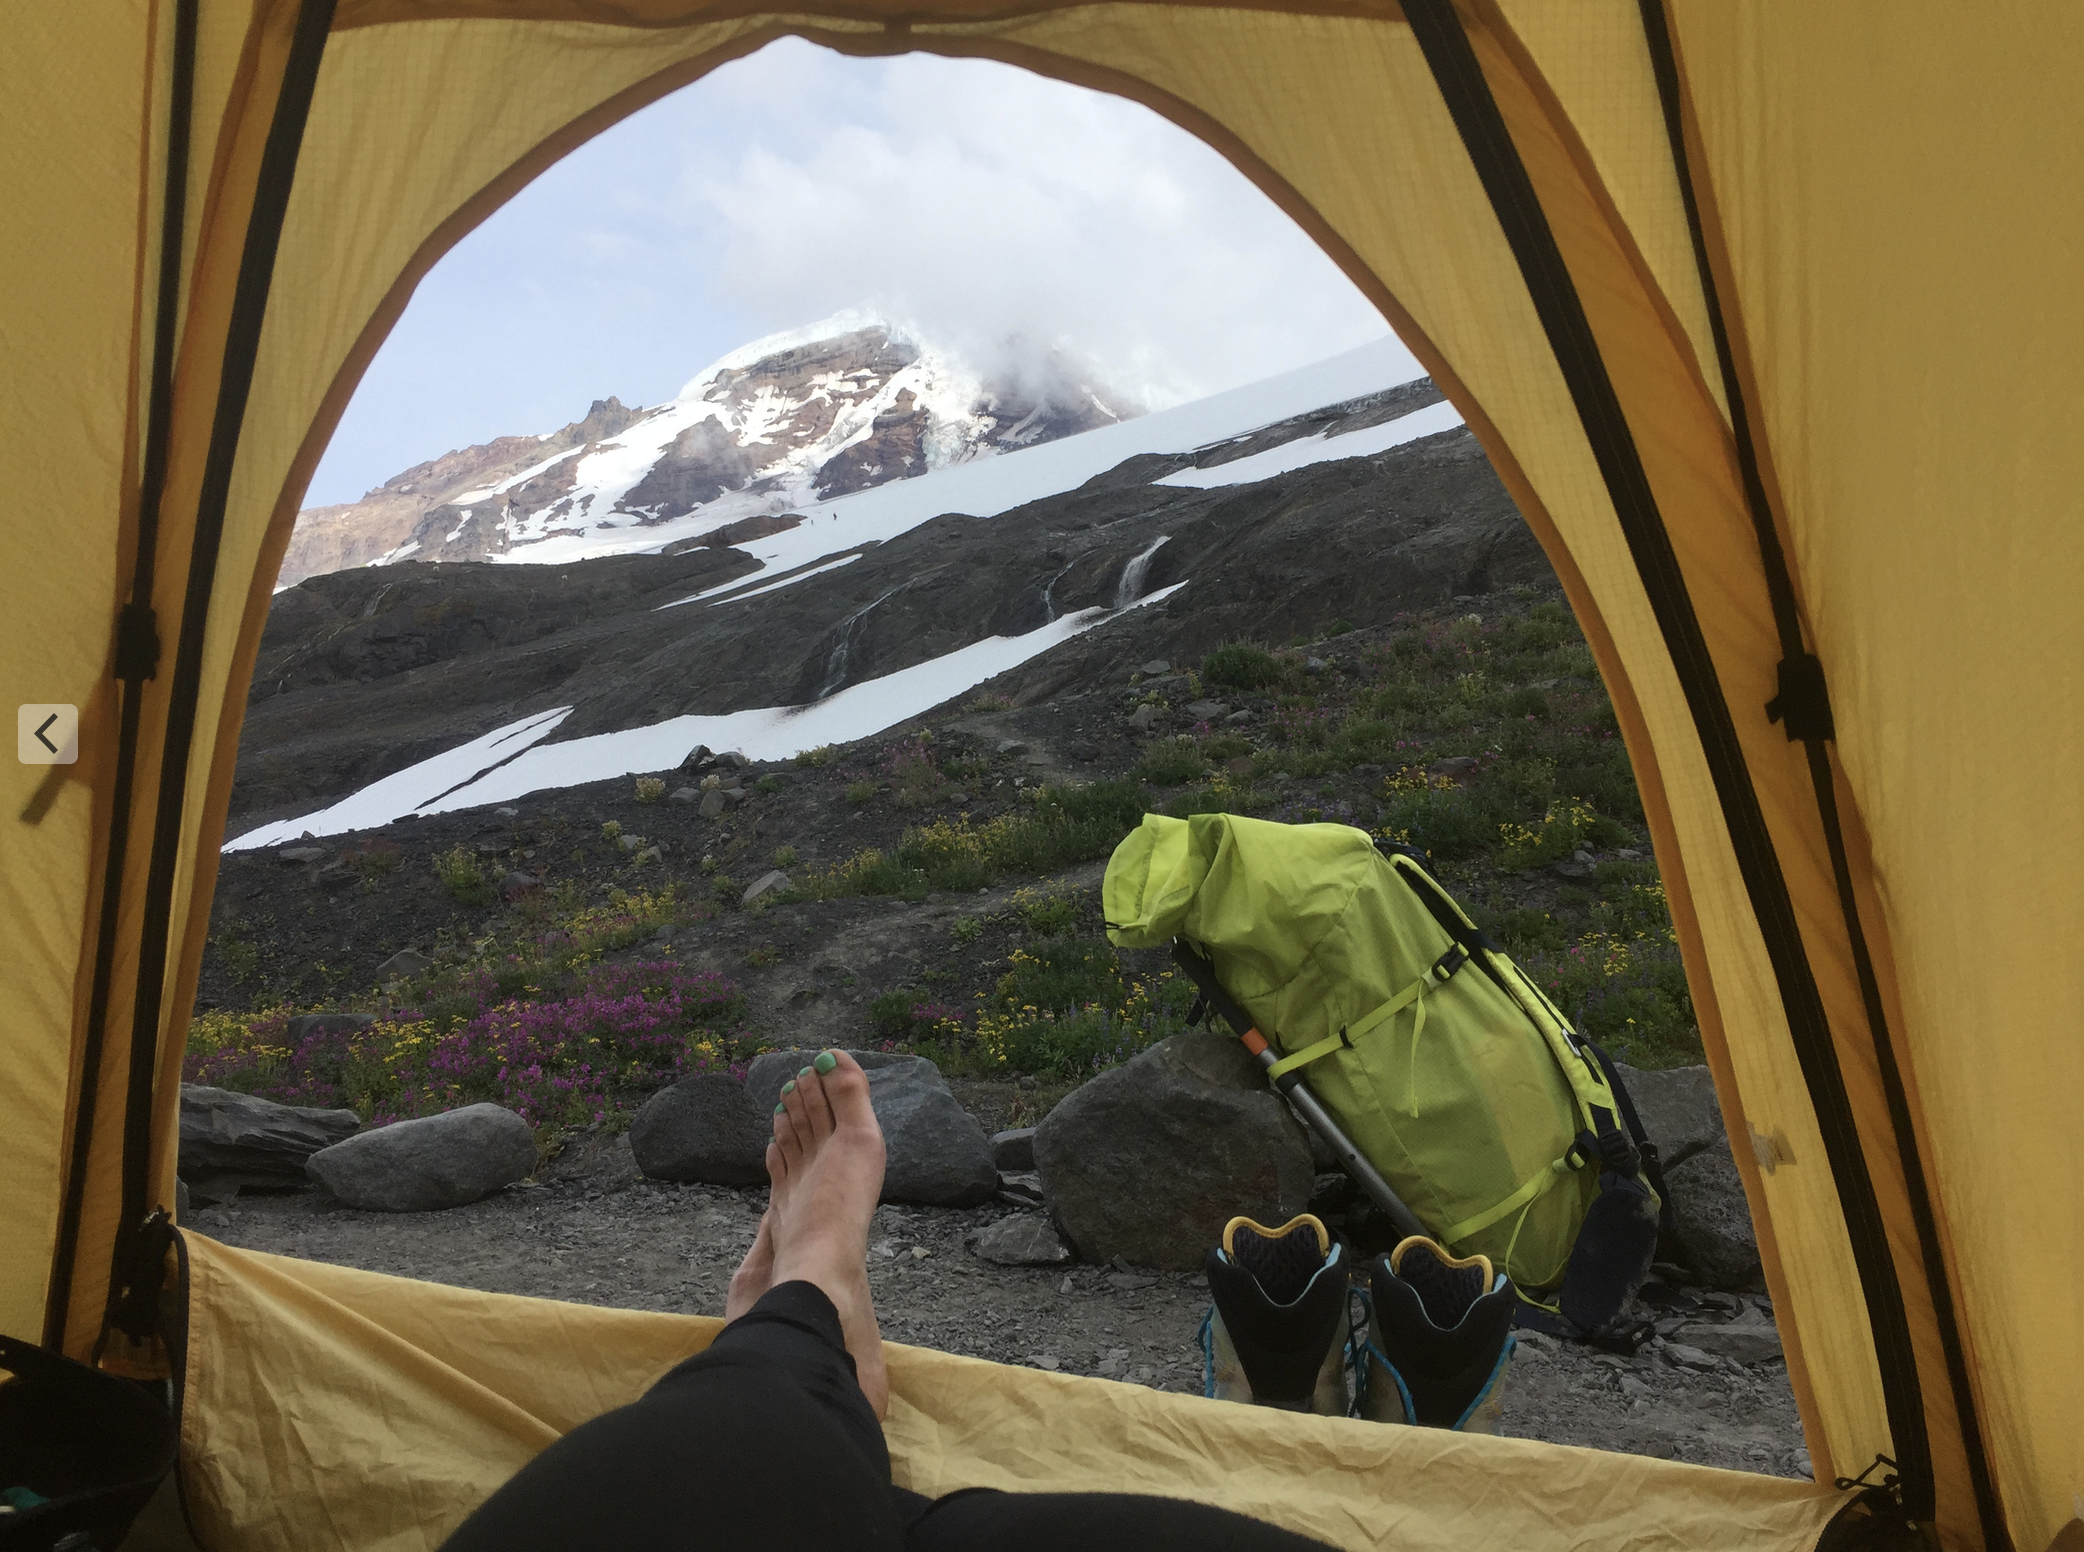 Now, its like this. Remembering the view from tent on Mt Baker